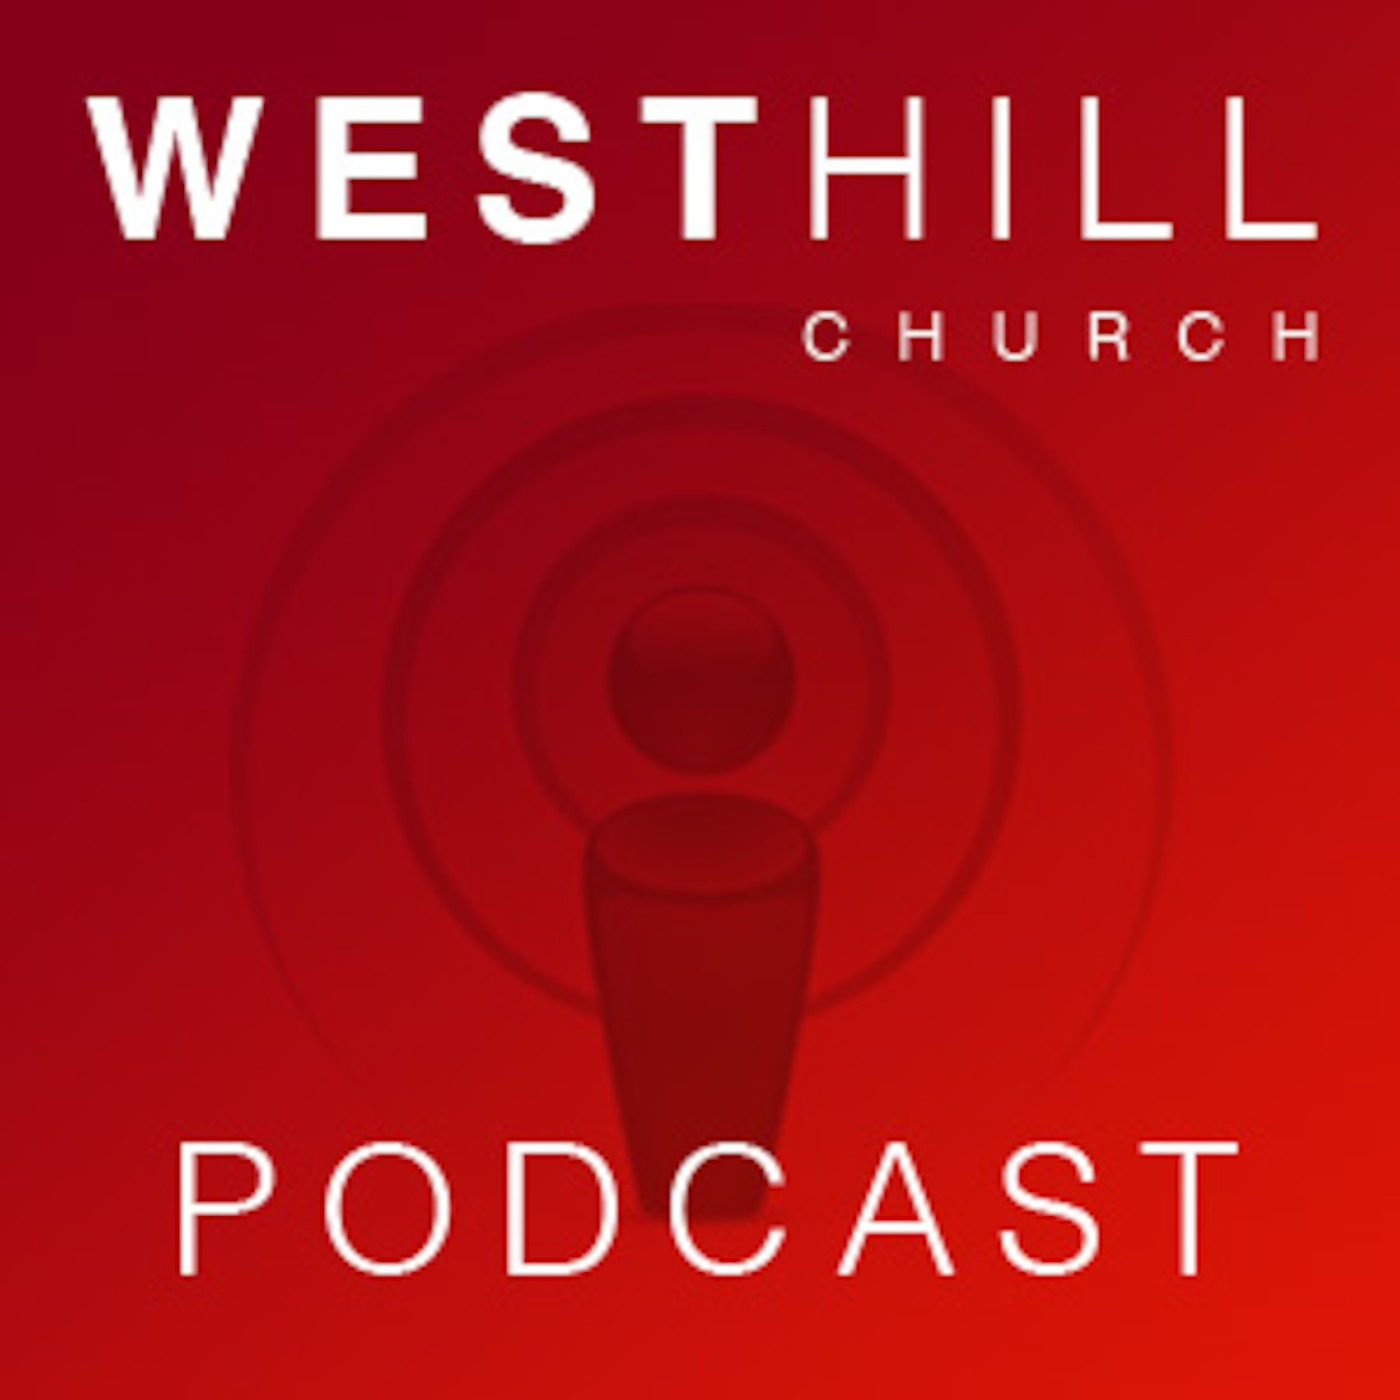 Westhill Church's Podcast